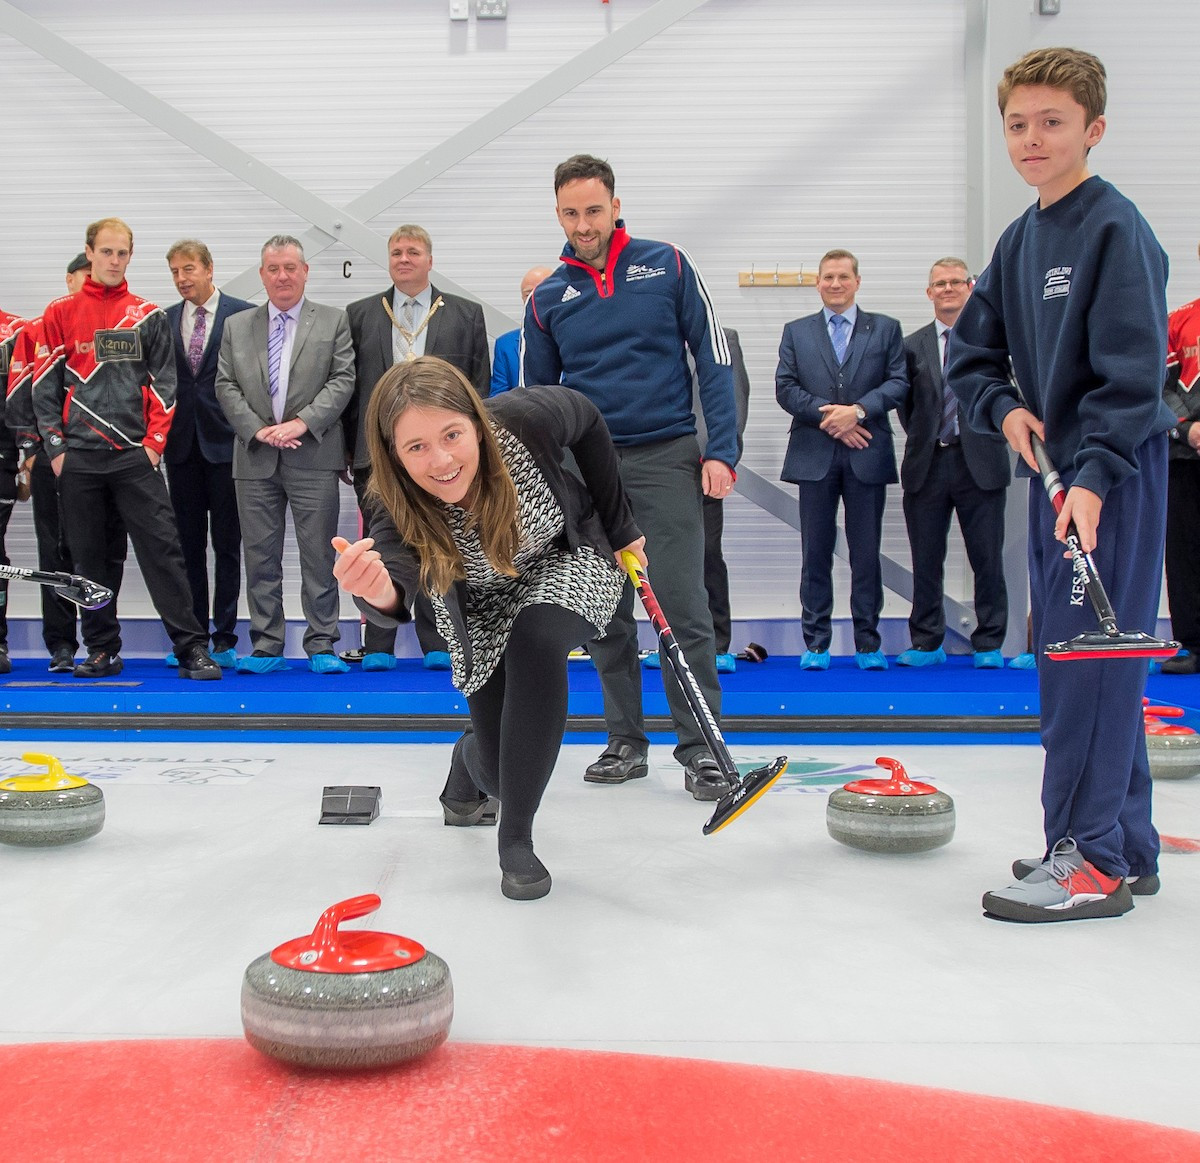 Aileen Campbell, Minister for Public Health and Sport, delivers the opening stone at the newly opened National Curling Academy in Stirling, Scotland ©Alan Peebles